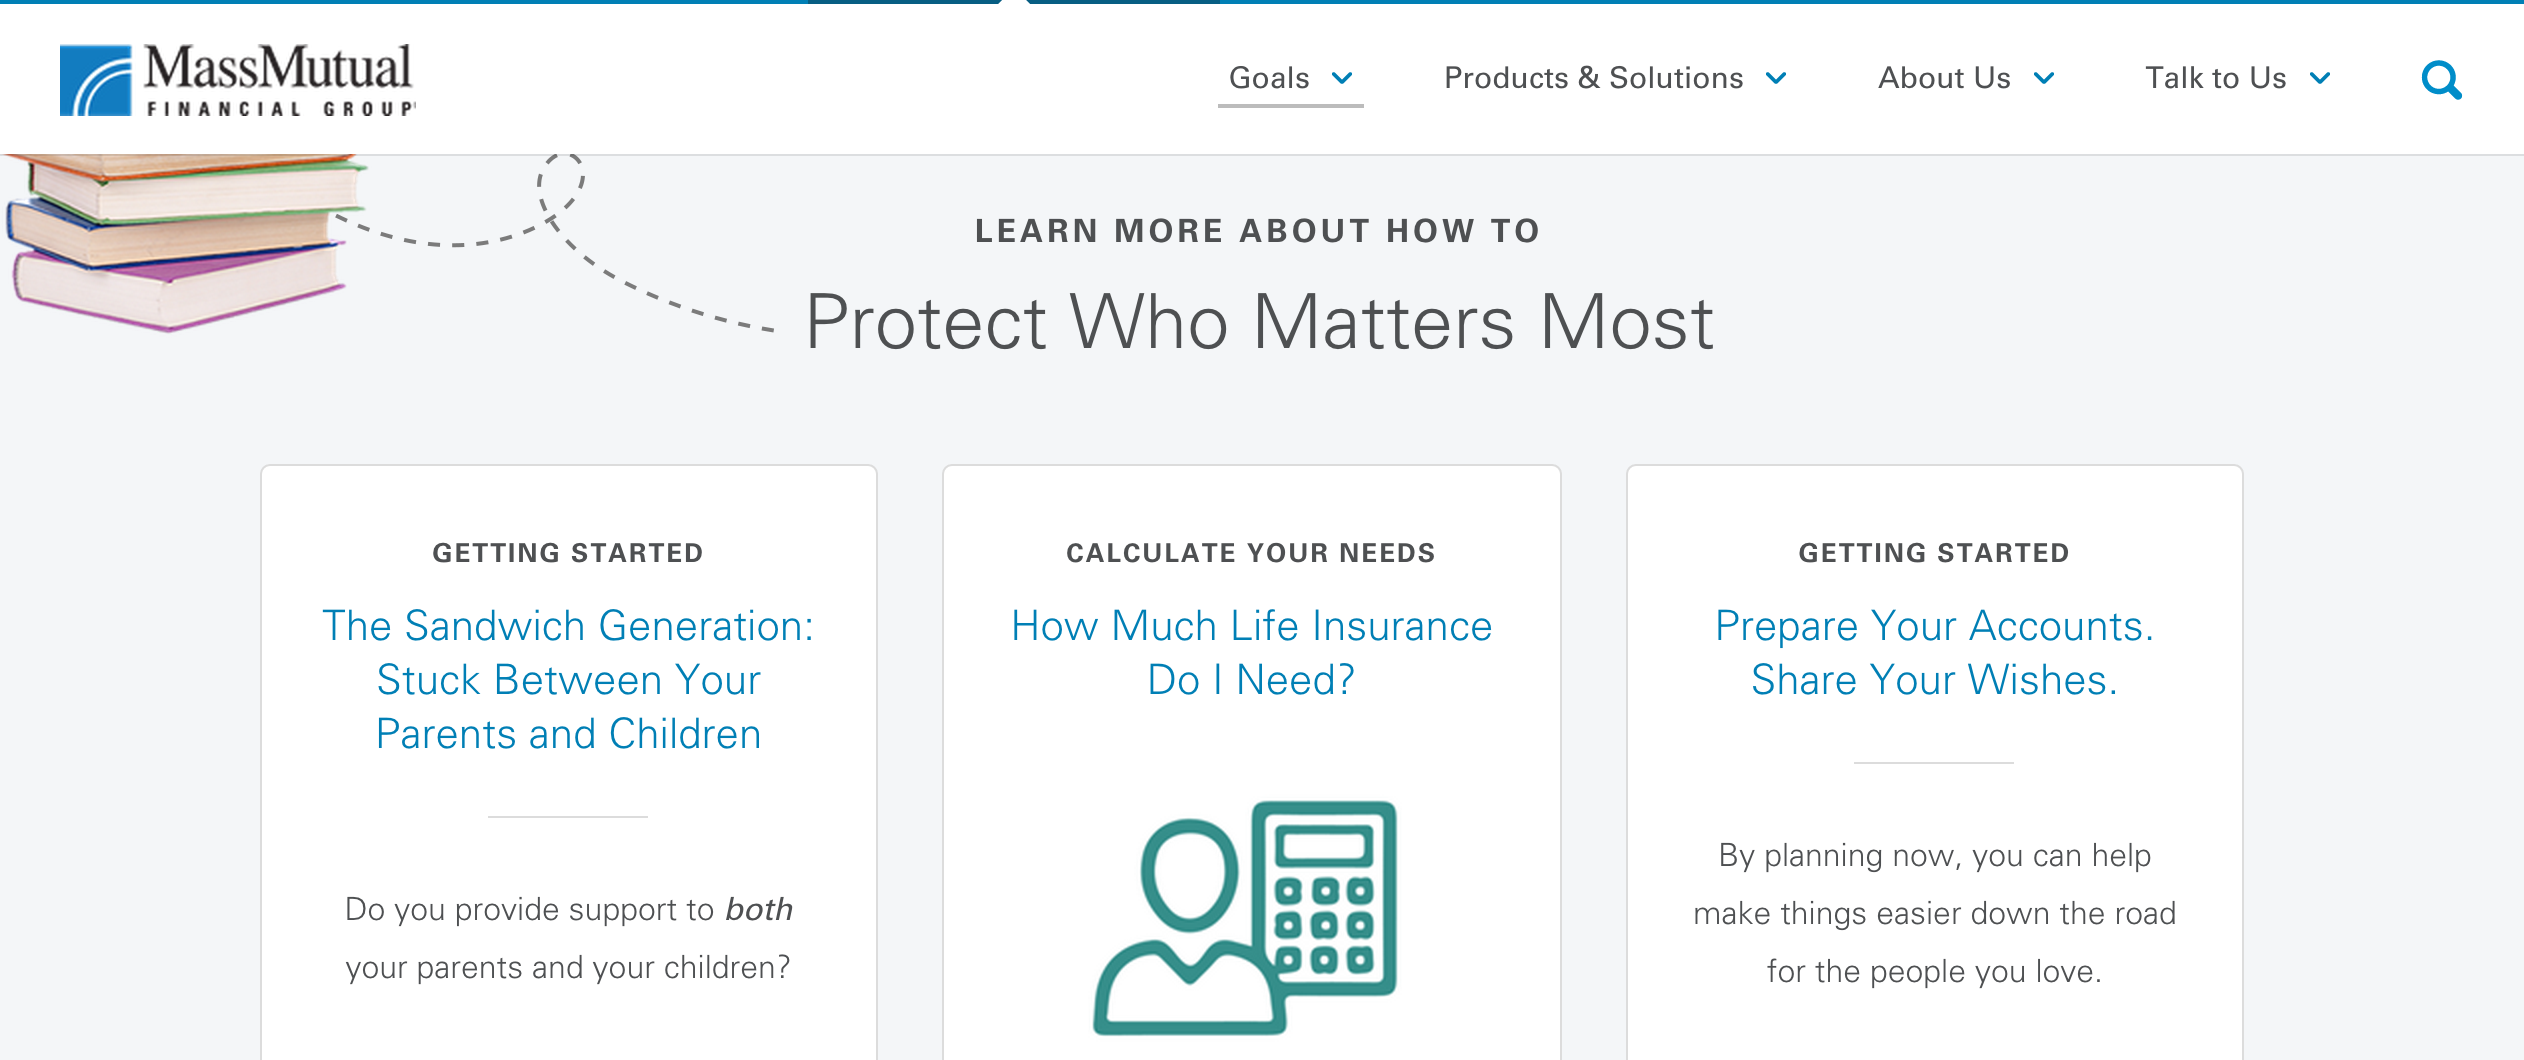 Protecting Your Financial Future with Mass Mutual